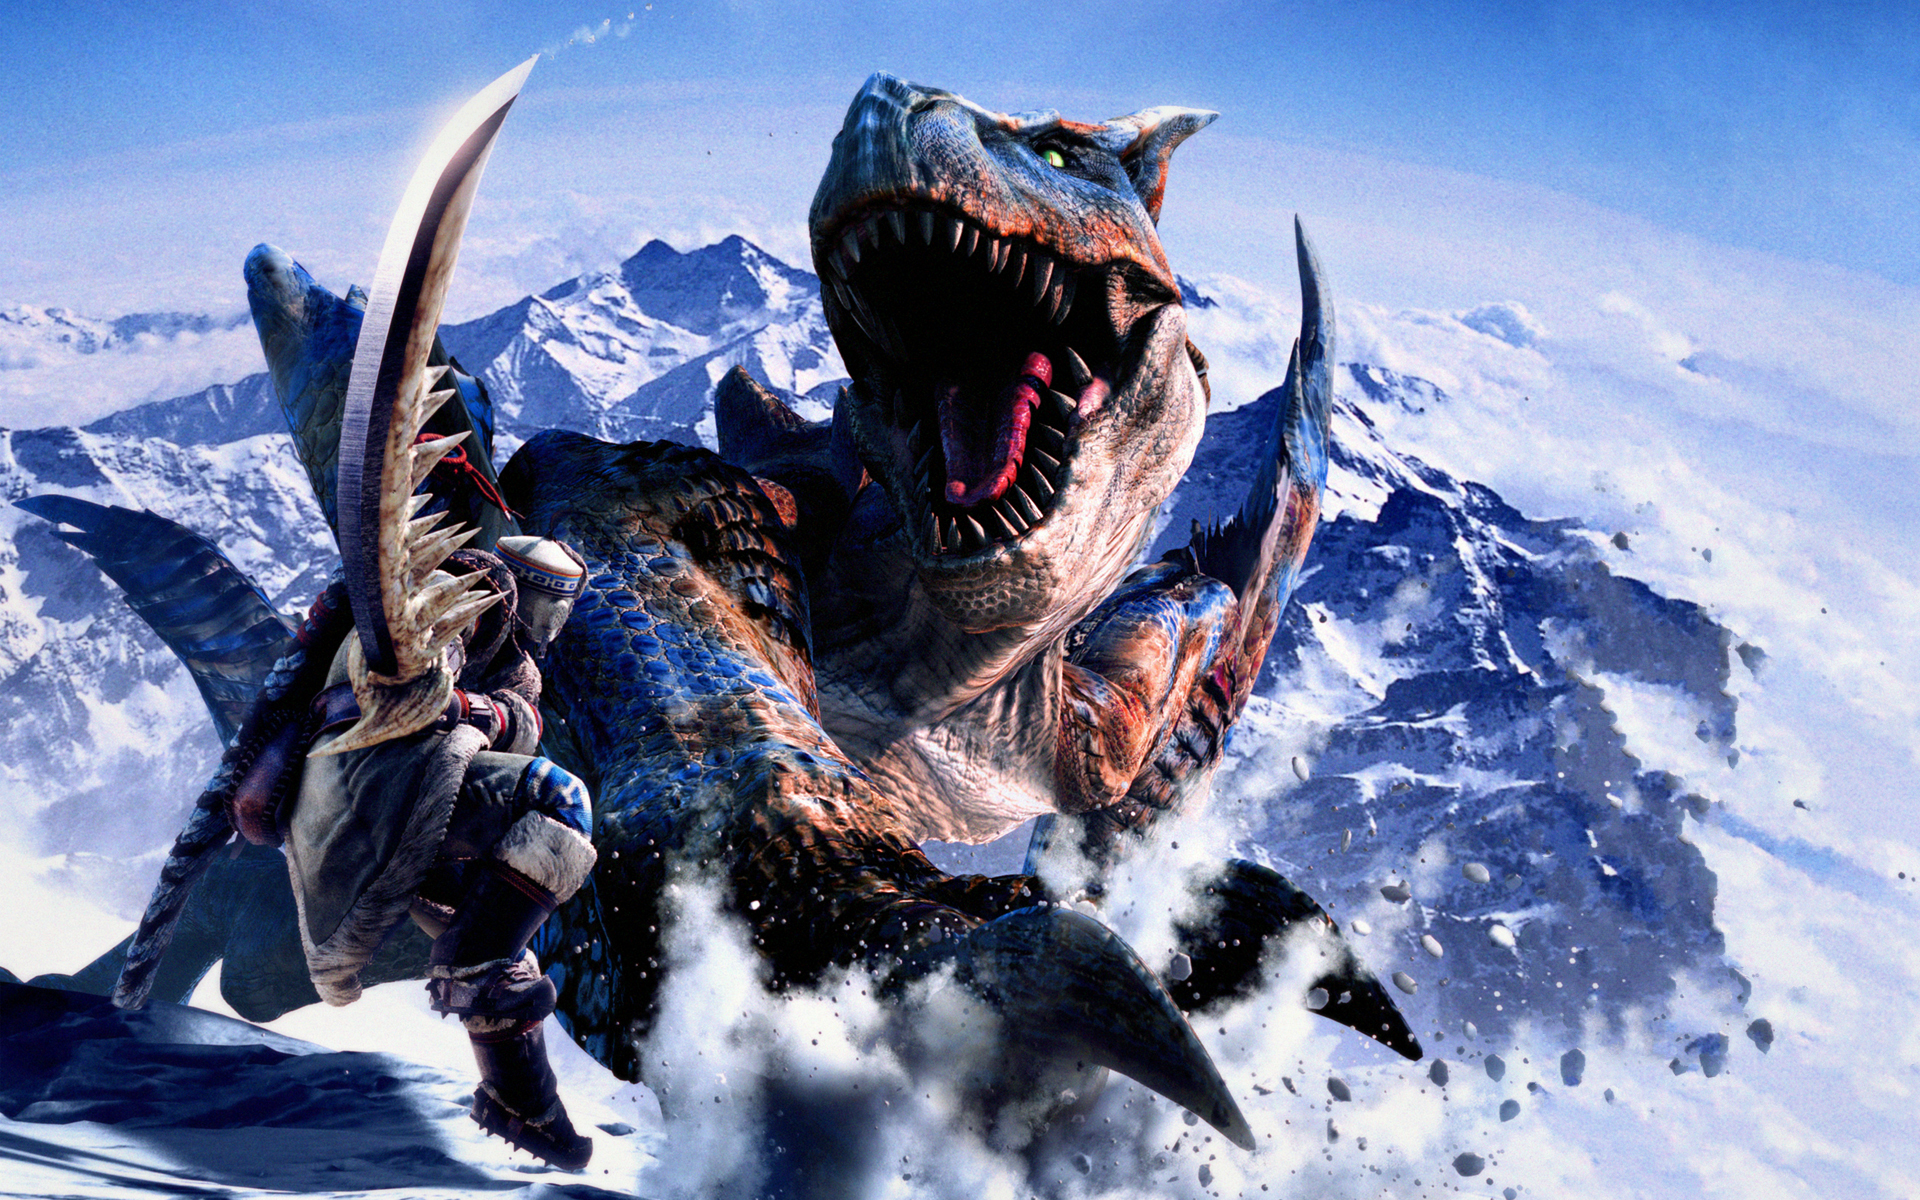 monster hunter computer wallpapers desktop backgrounds